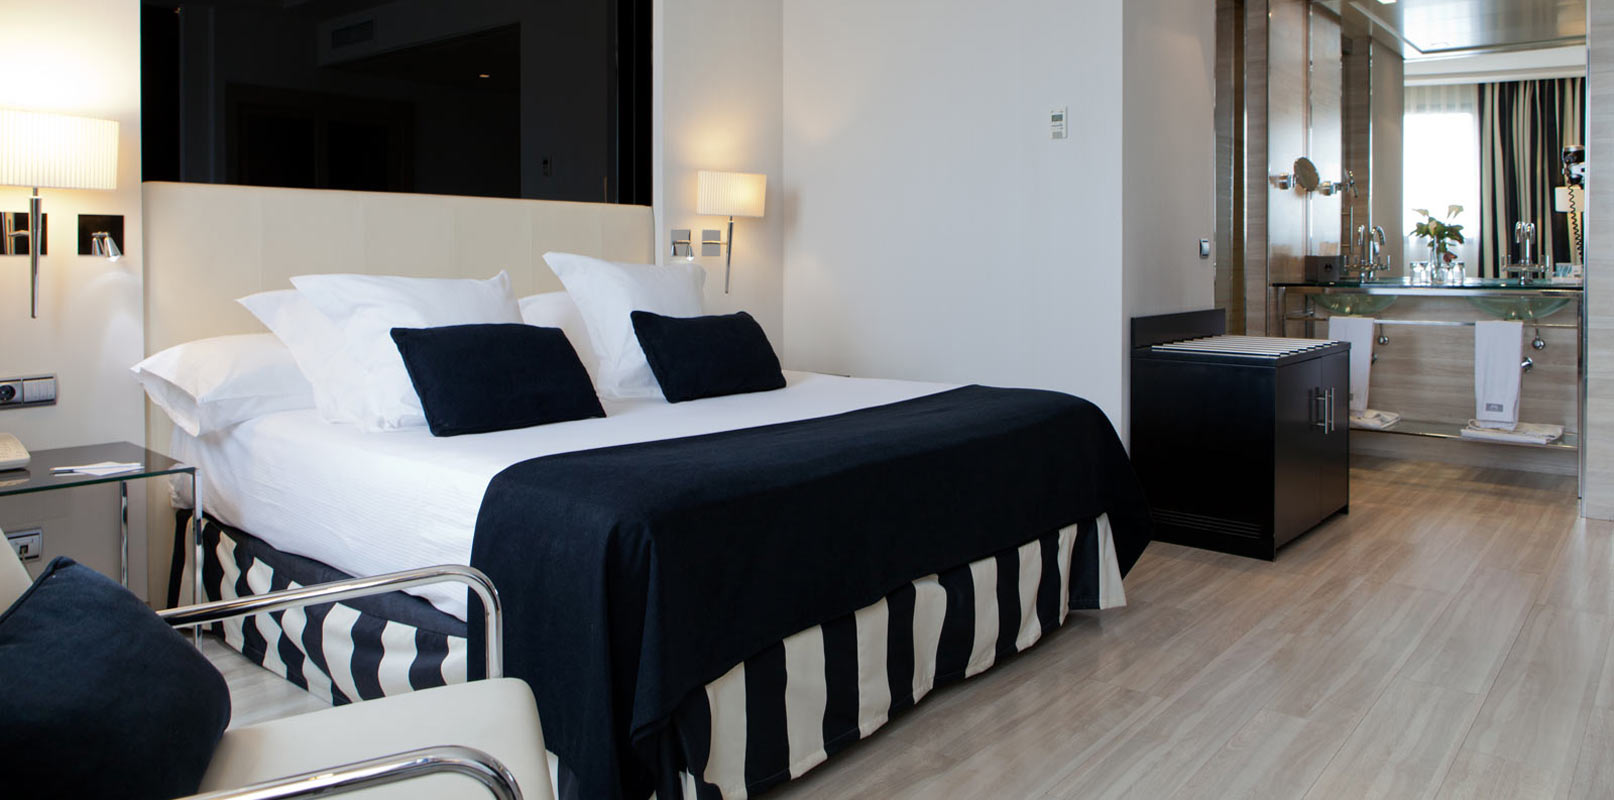 Hotel Maydrit In Madrid Close To The Airport And Ifema